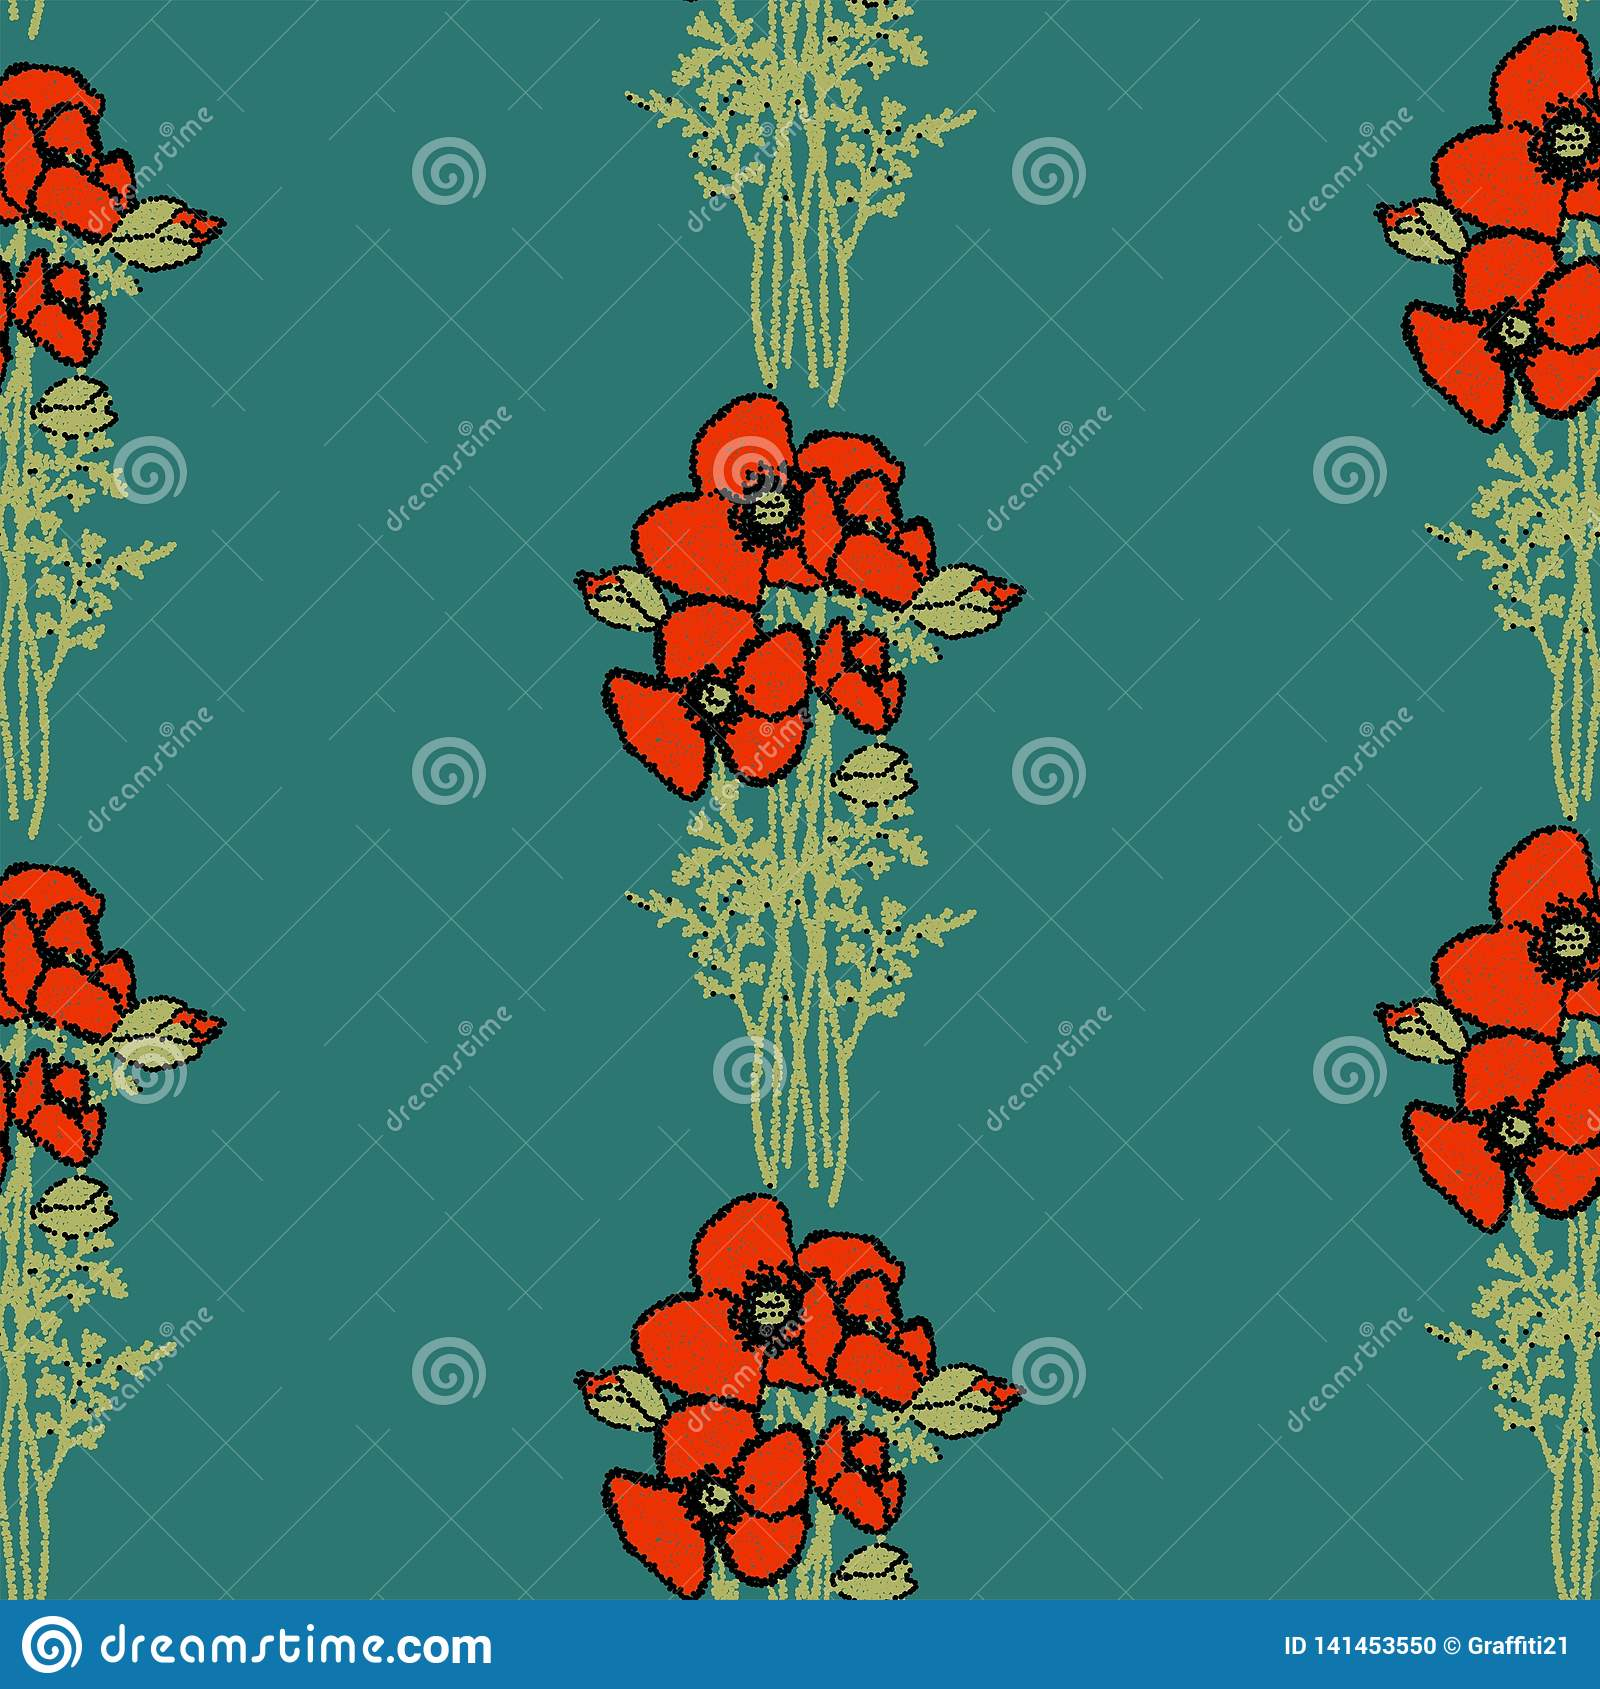 Seamless Floral Pattern. retro style Red poppies pattern with poppy flowers and green foliage on beige. Floral seamless background